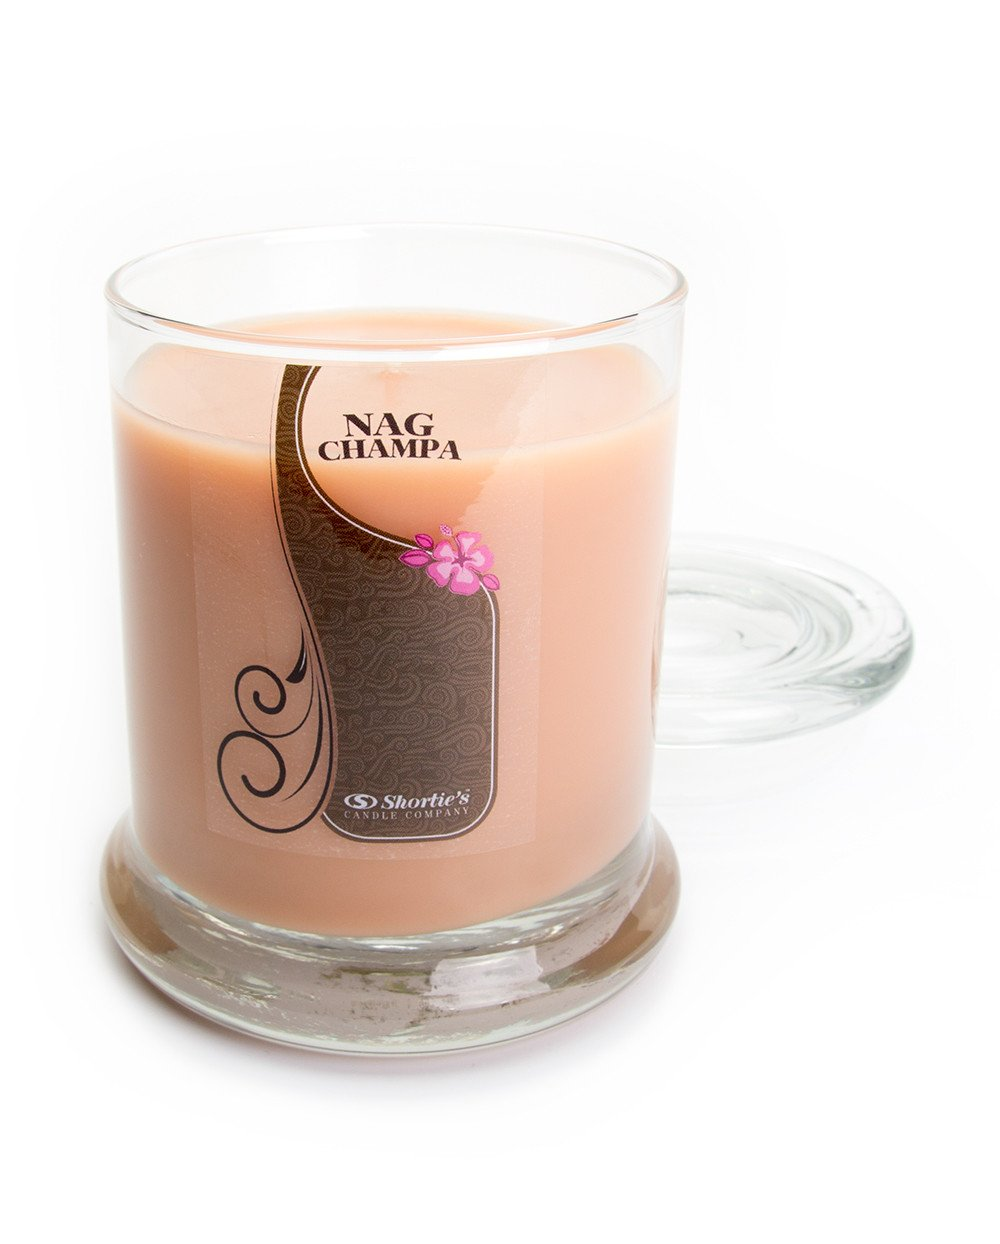 Candles Collection Highly Scented 10 Oz Brown Jar Candle Nag Champa Candle